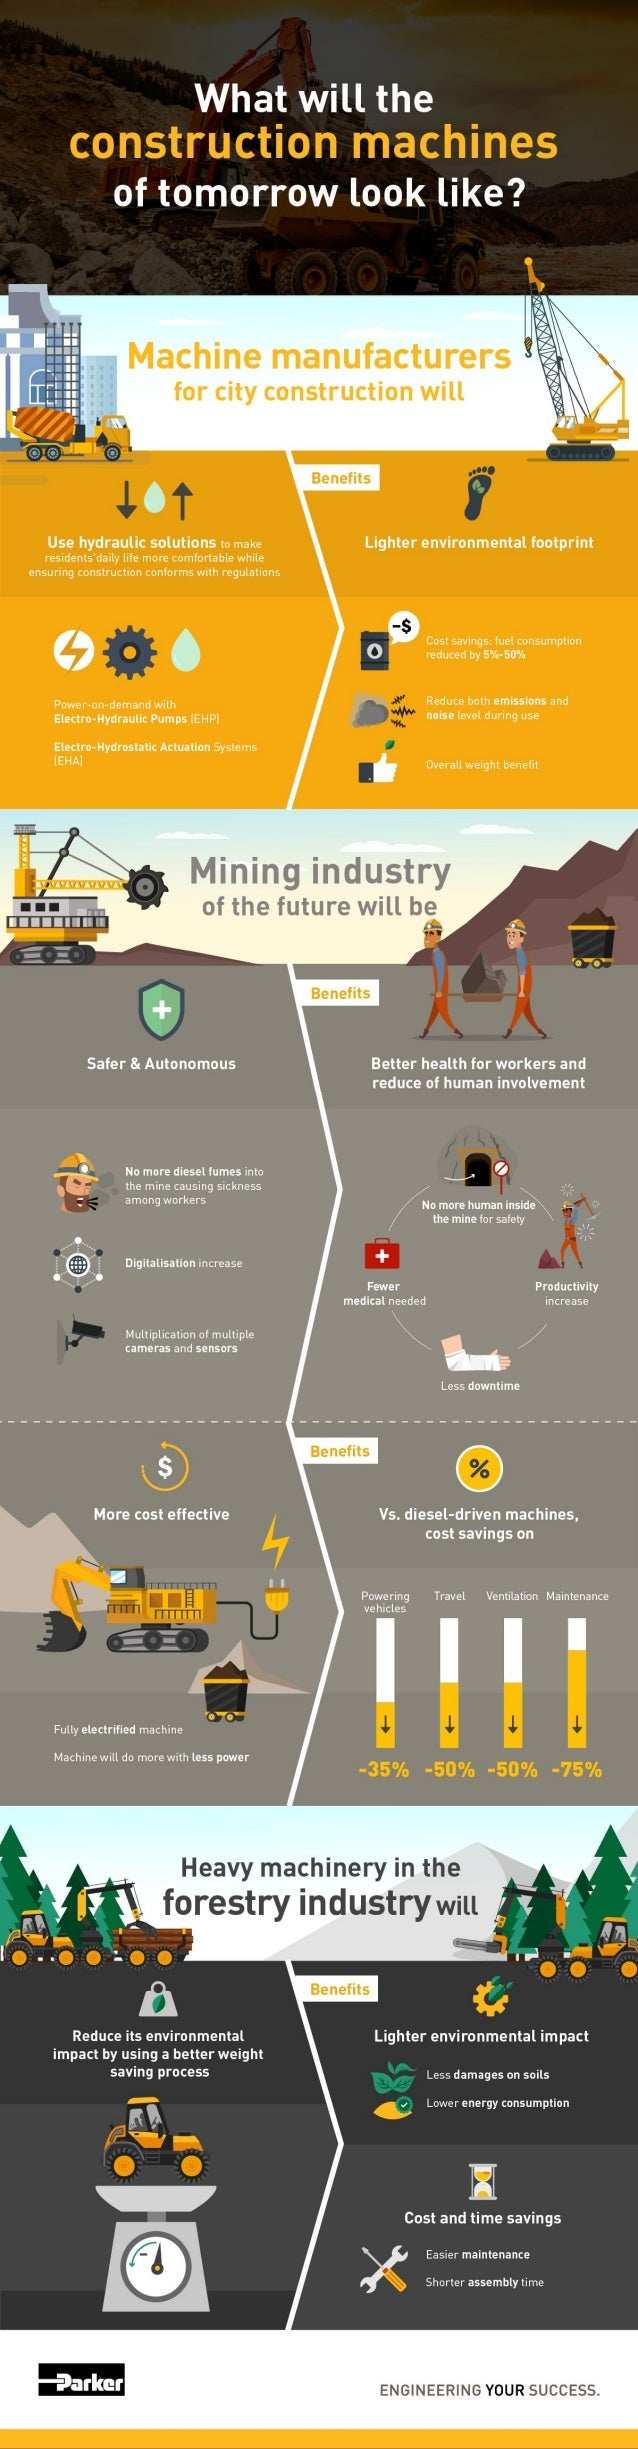 The Construction Machines of Tomorrow - Infographic - Parker Hannifin